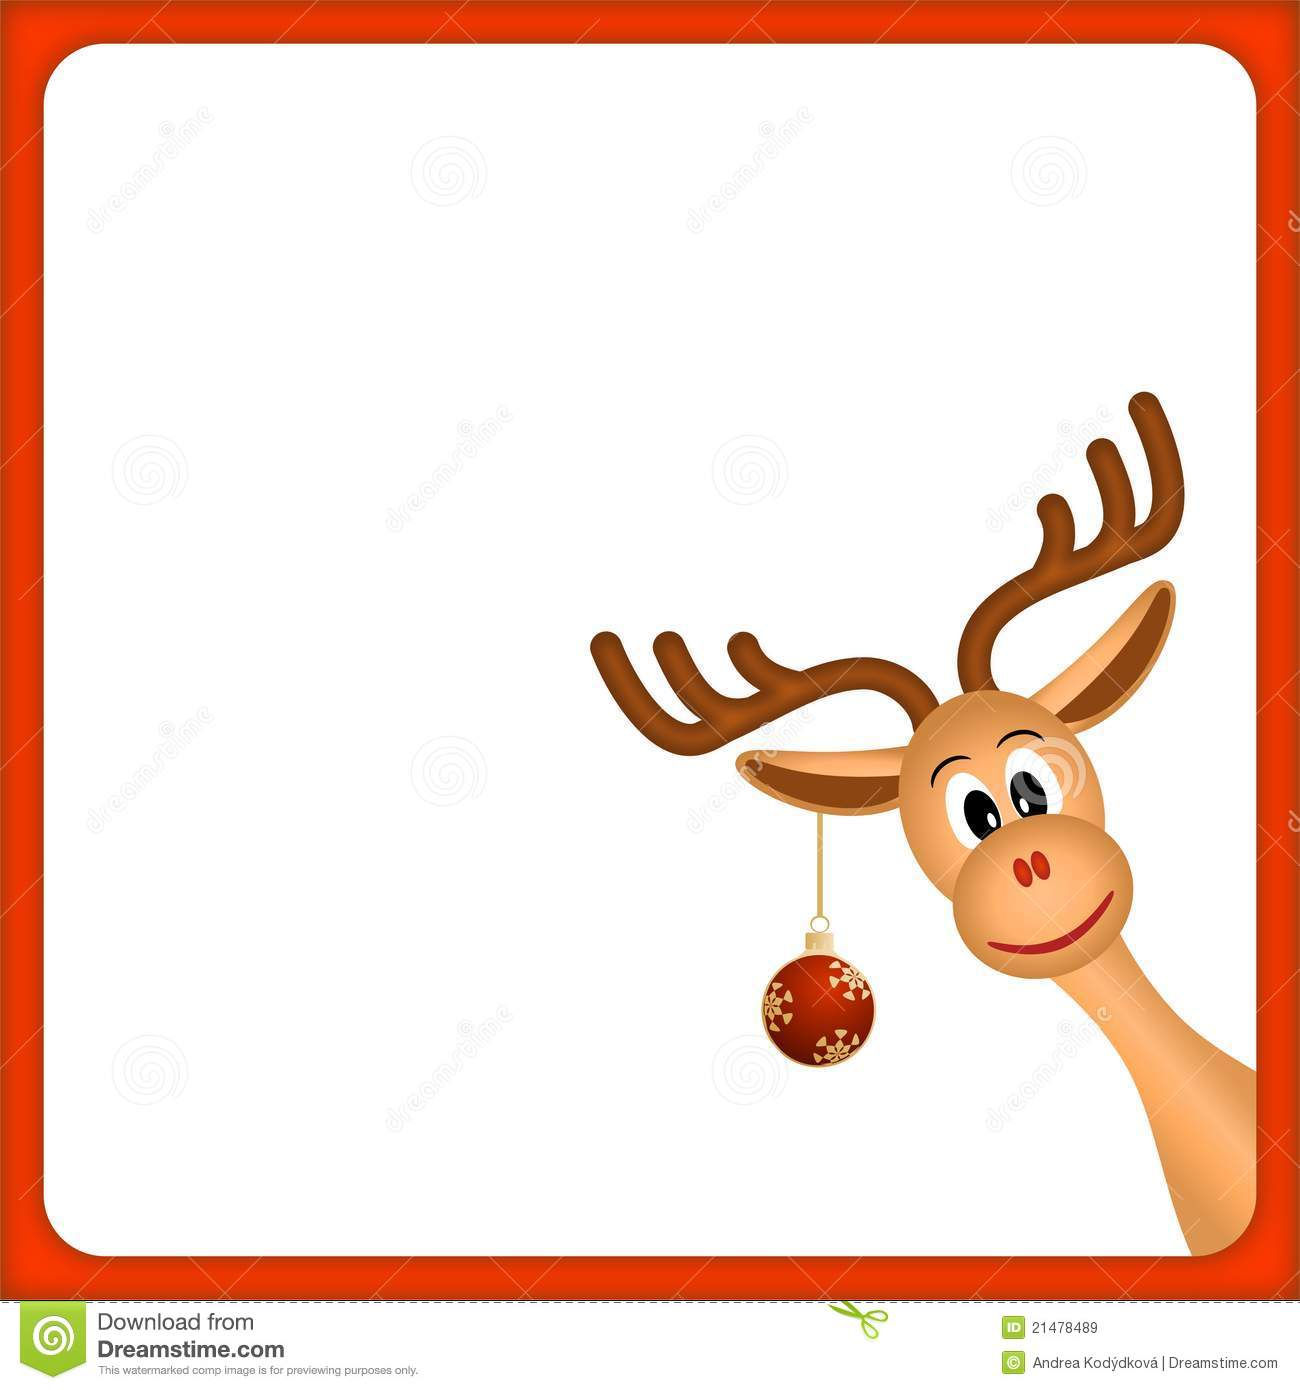 christmas reindeer in empty frame with red border royalty free stock images image 21478489 Christmas Border Christmas Borders and Frames